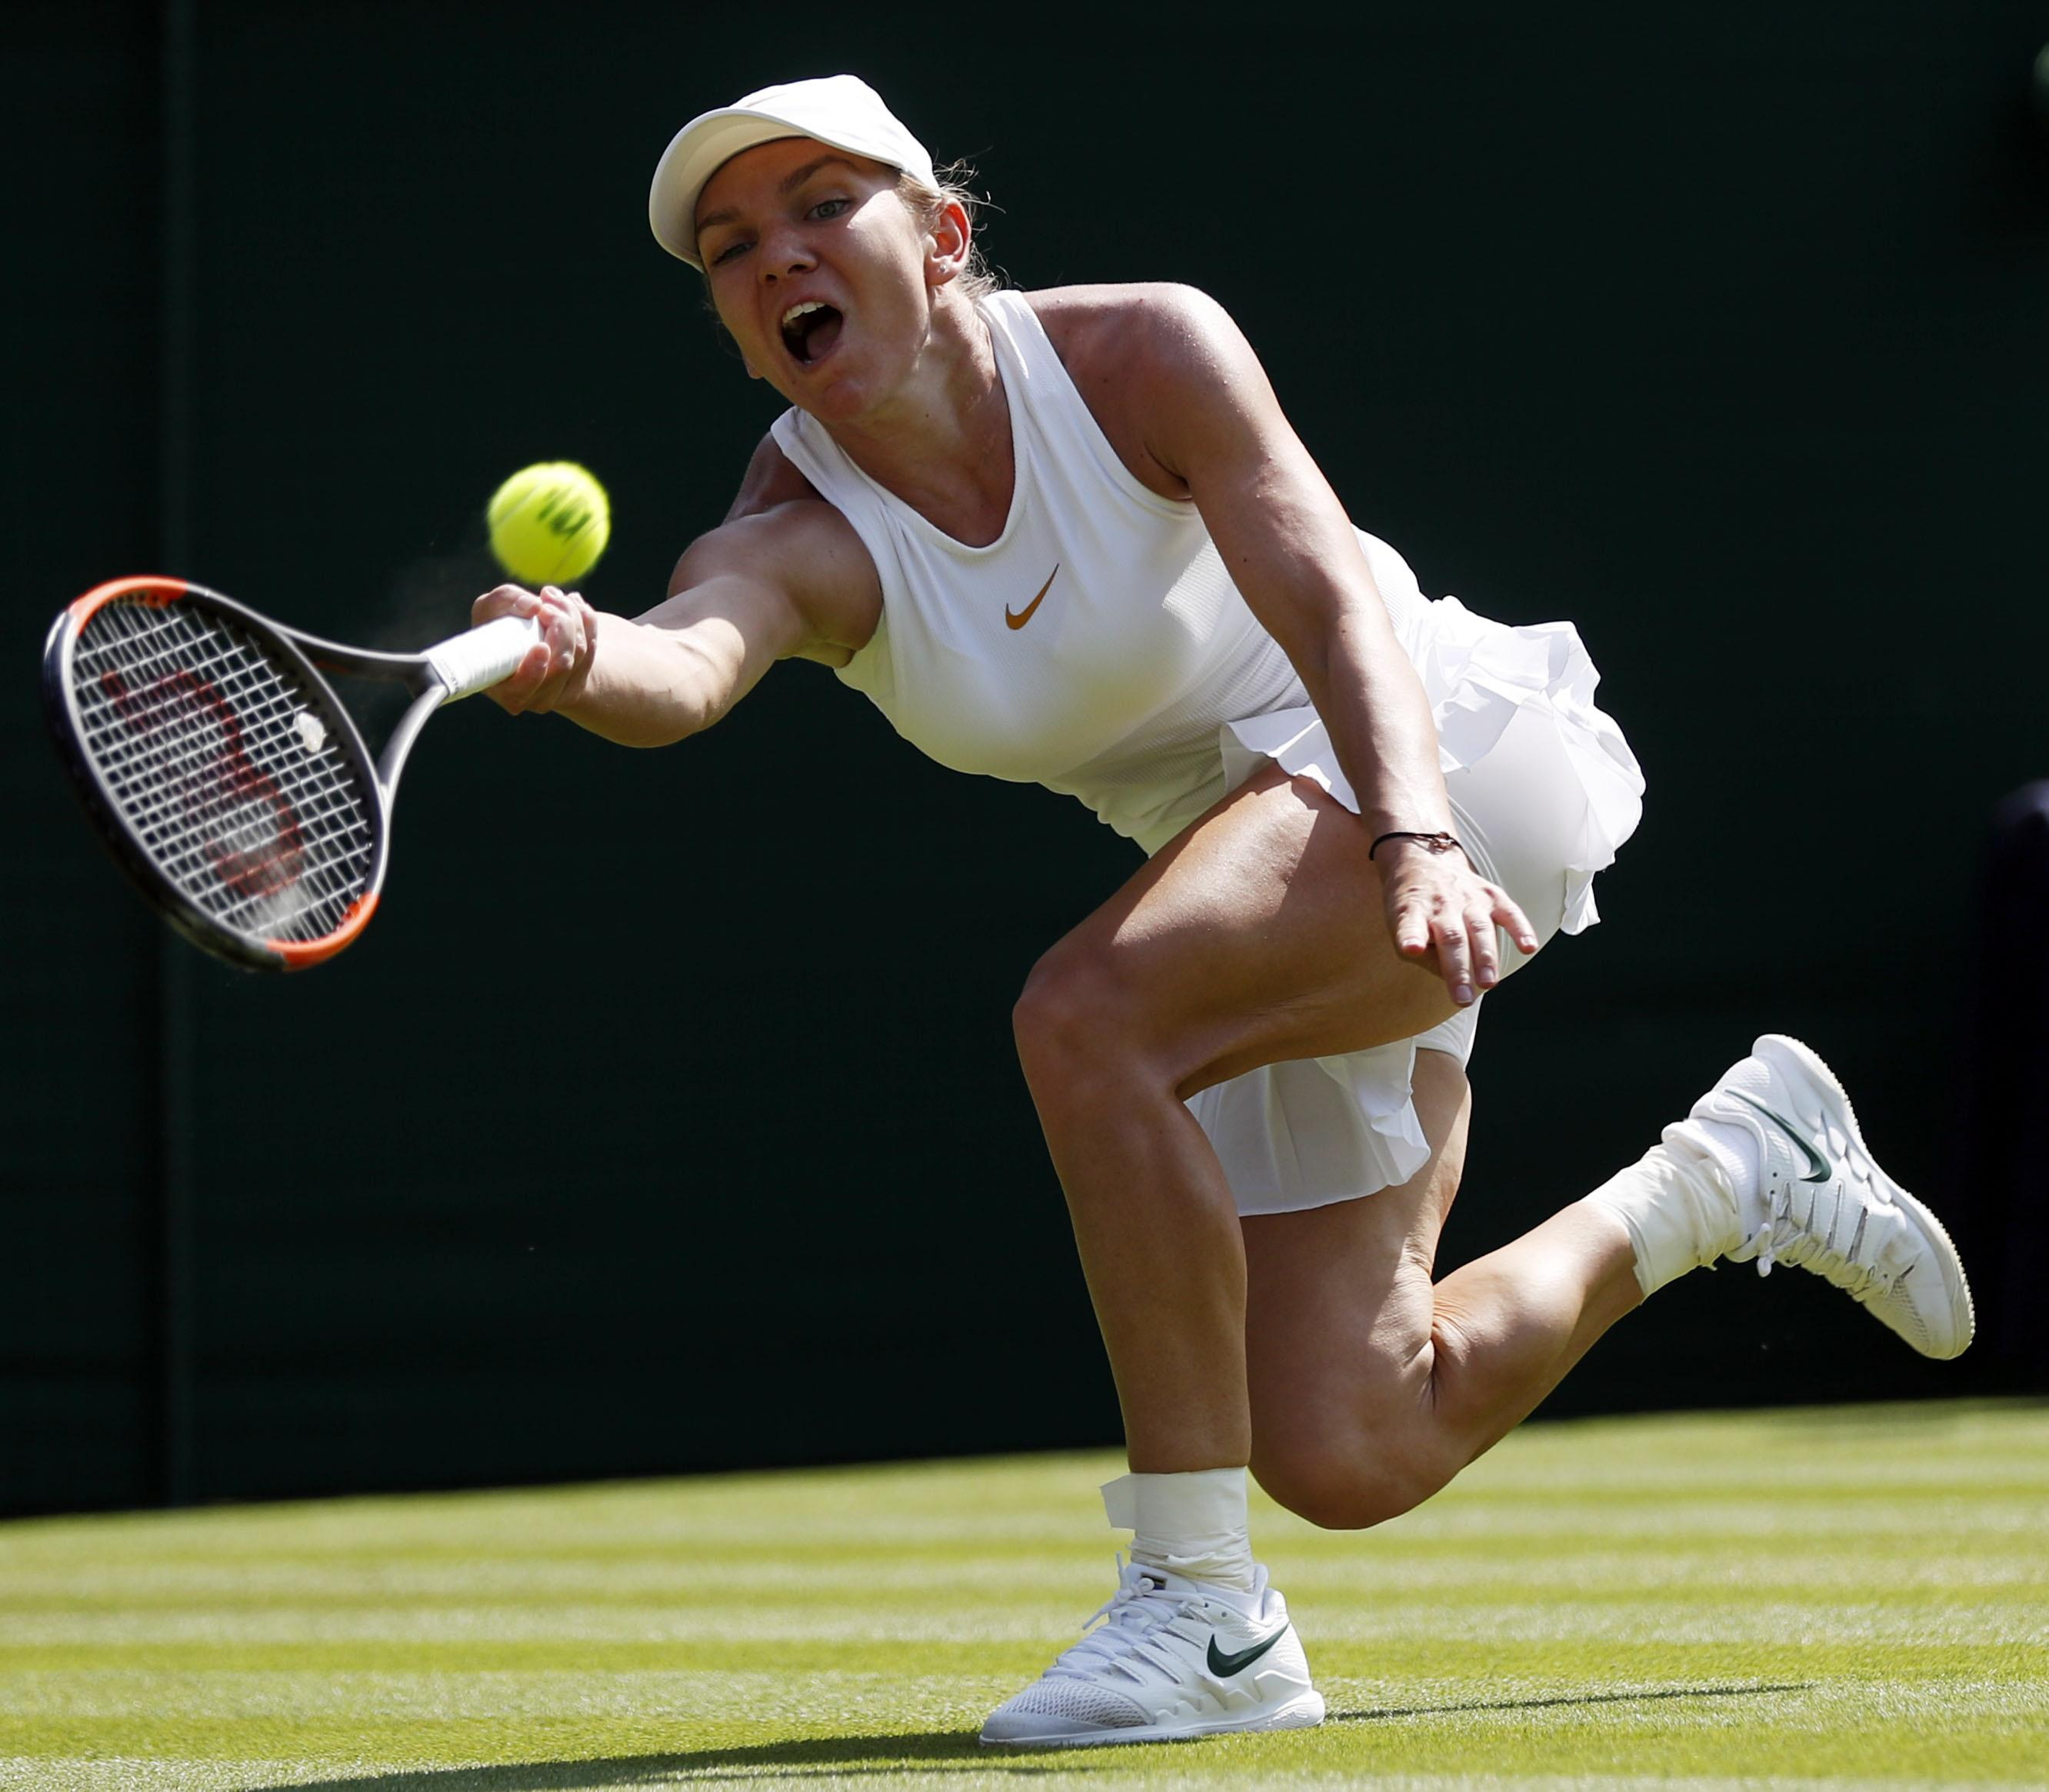 Halep is the latest seed to crash out of Wimbledon as the Ladies event was blown wide open